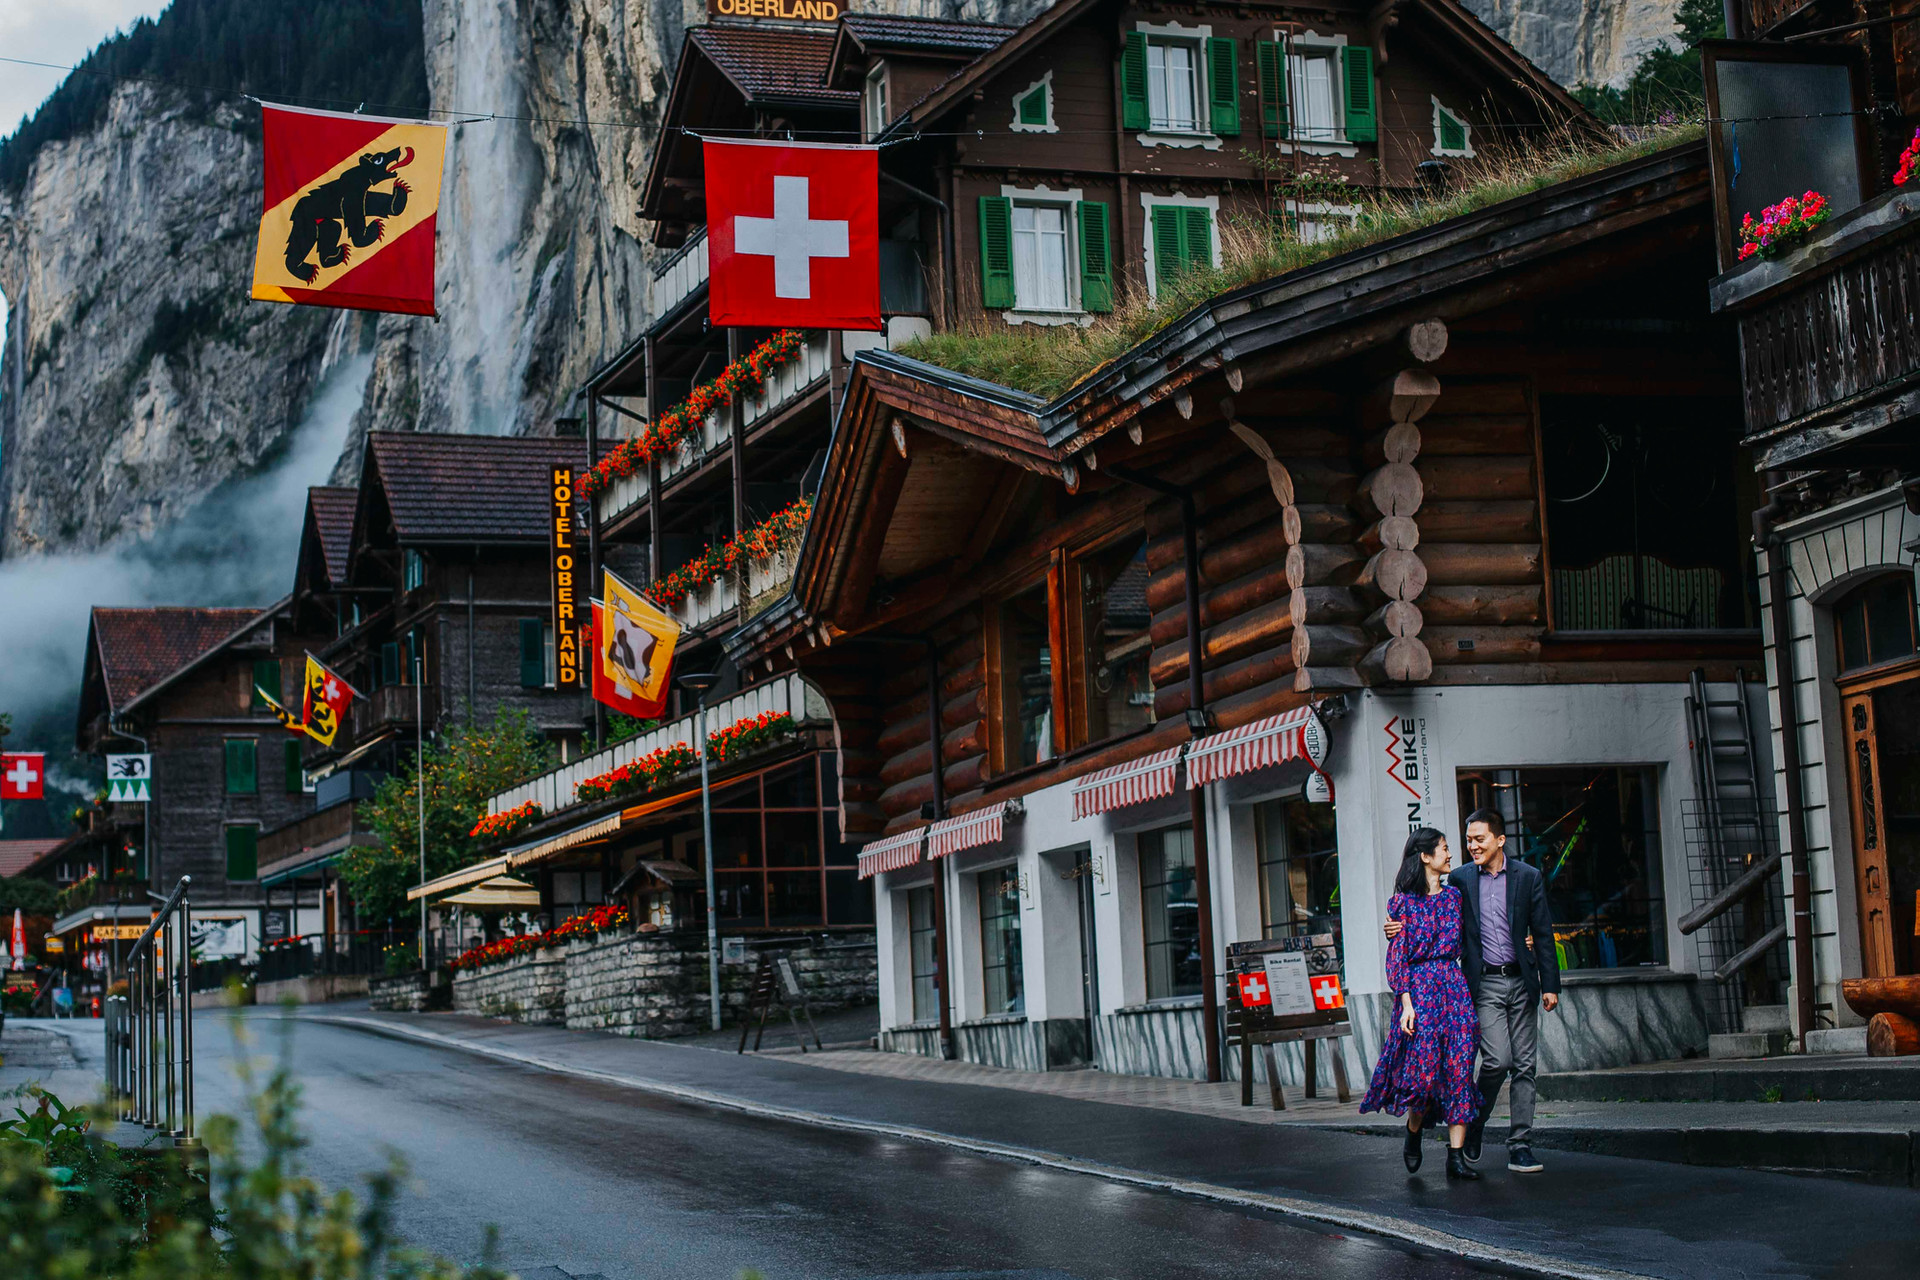 Lauterbrunnen Engagement photo session